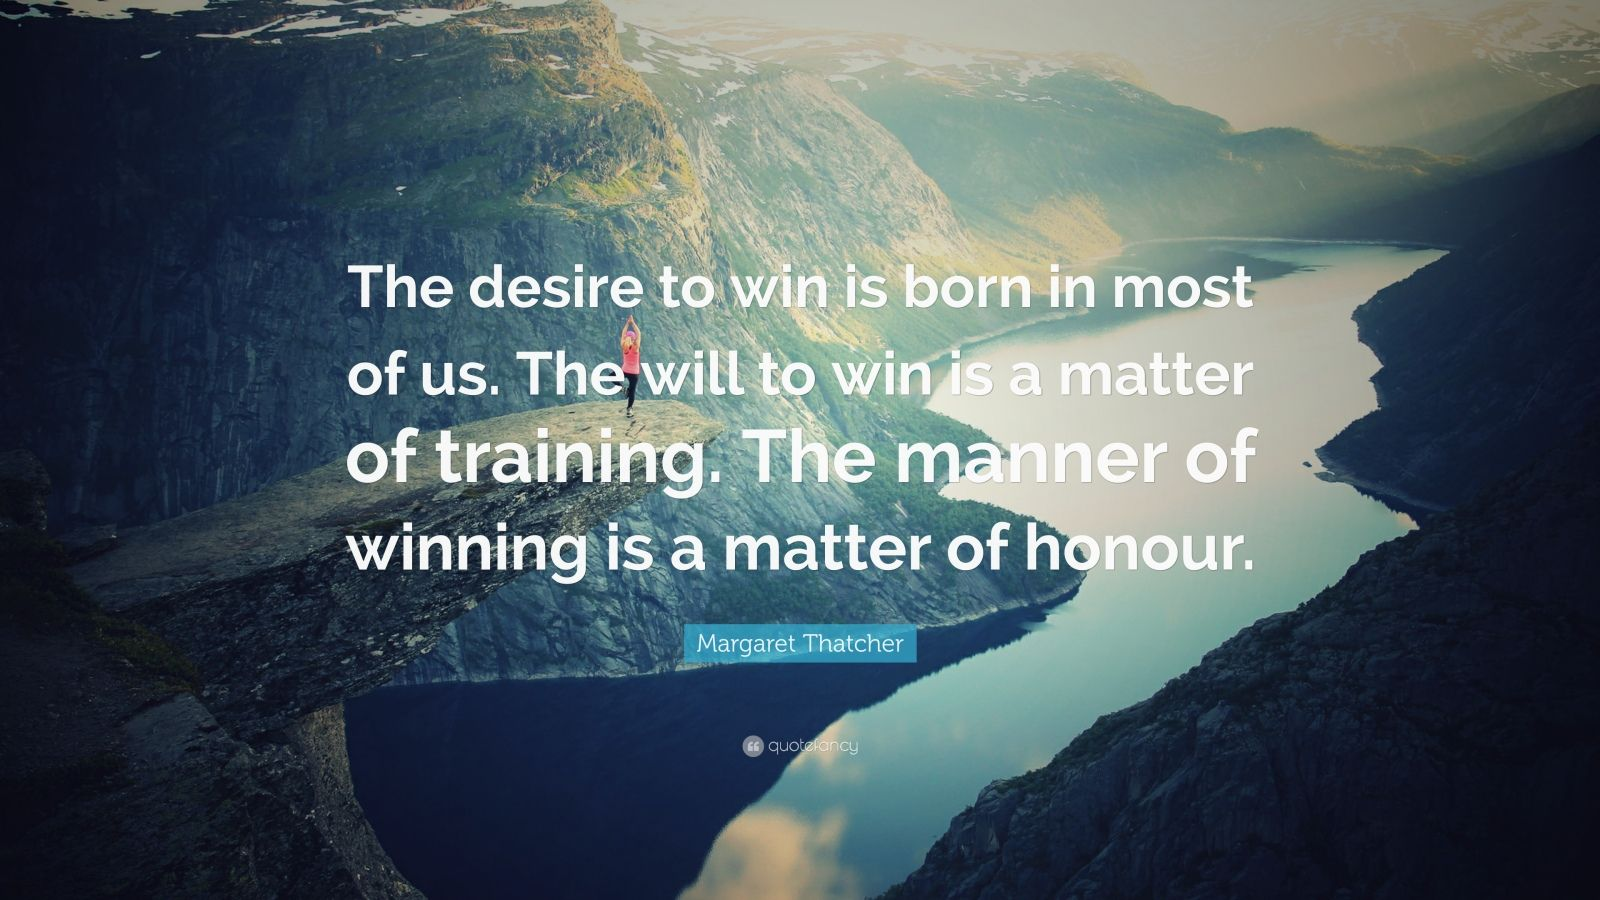 """Margaret Thatcher Quote: """"The desire to win is born in most of us. The will to win is a matter of training. The manner of winning is a matter of honour."""""""